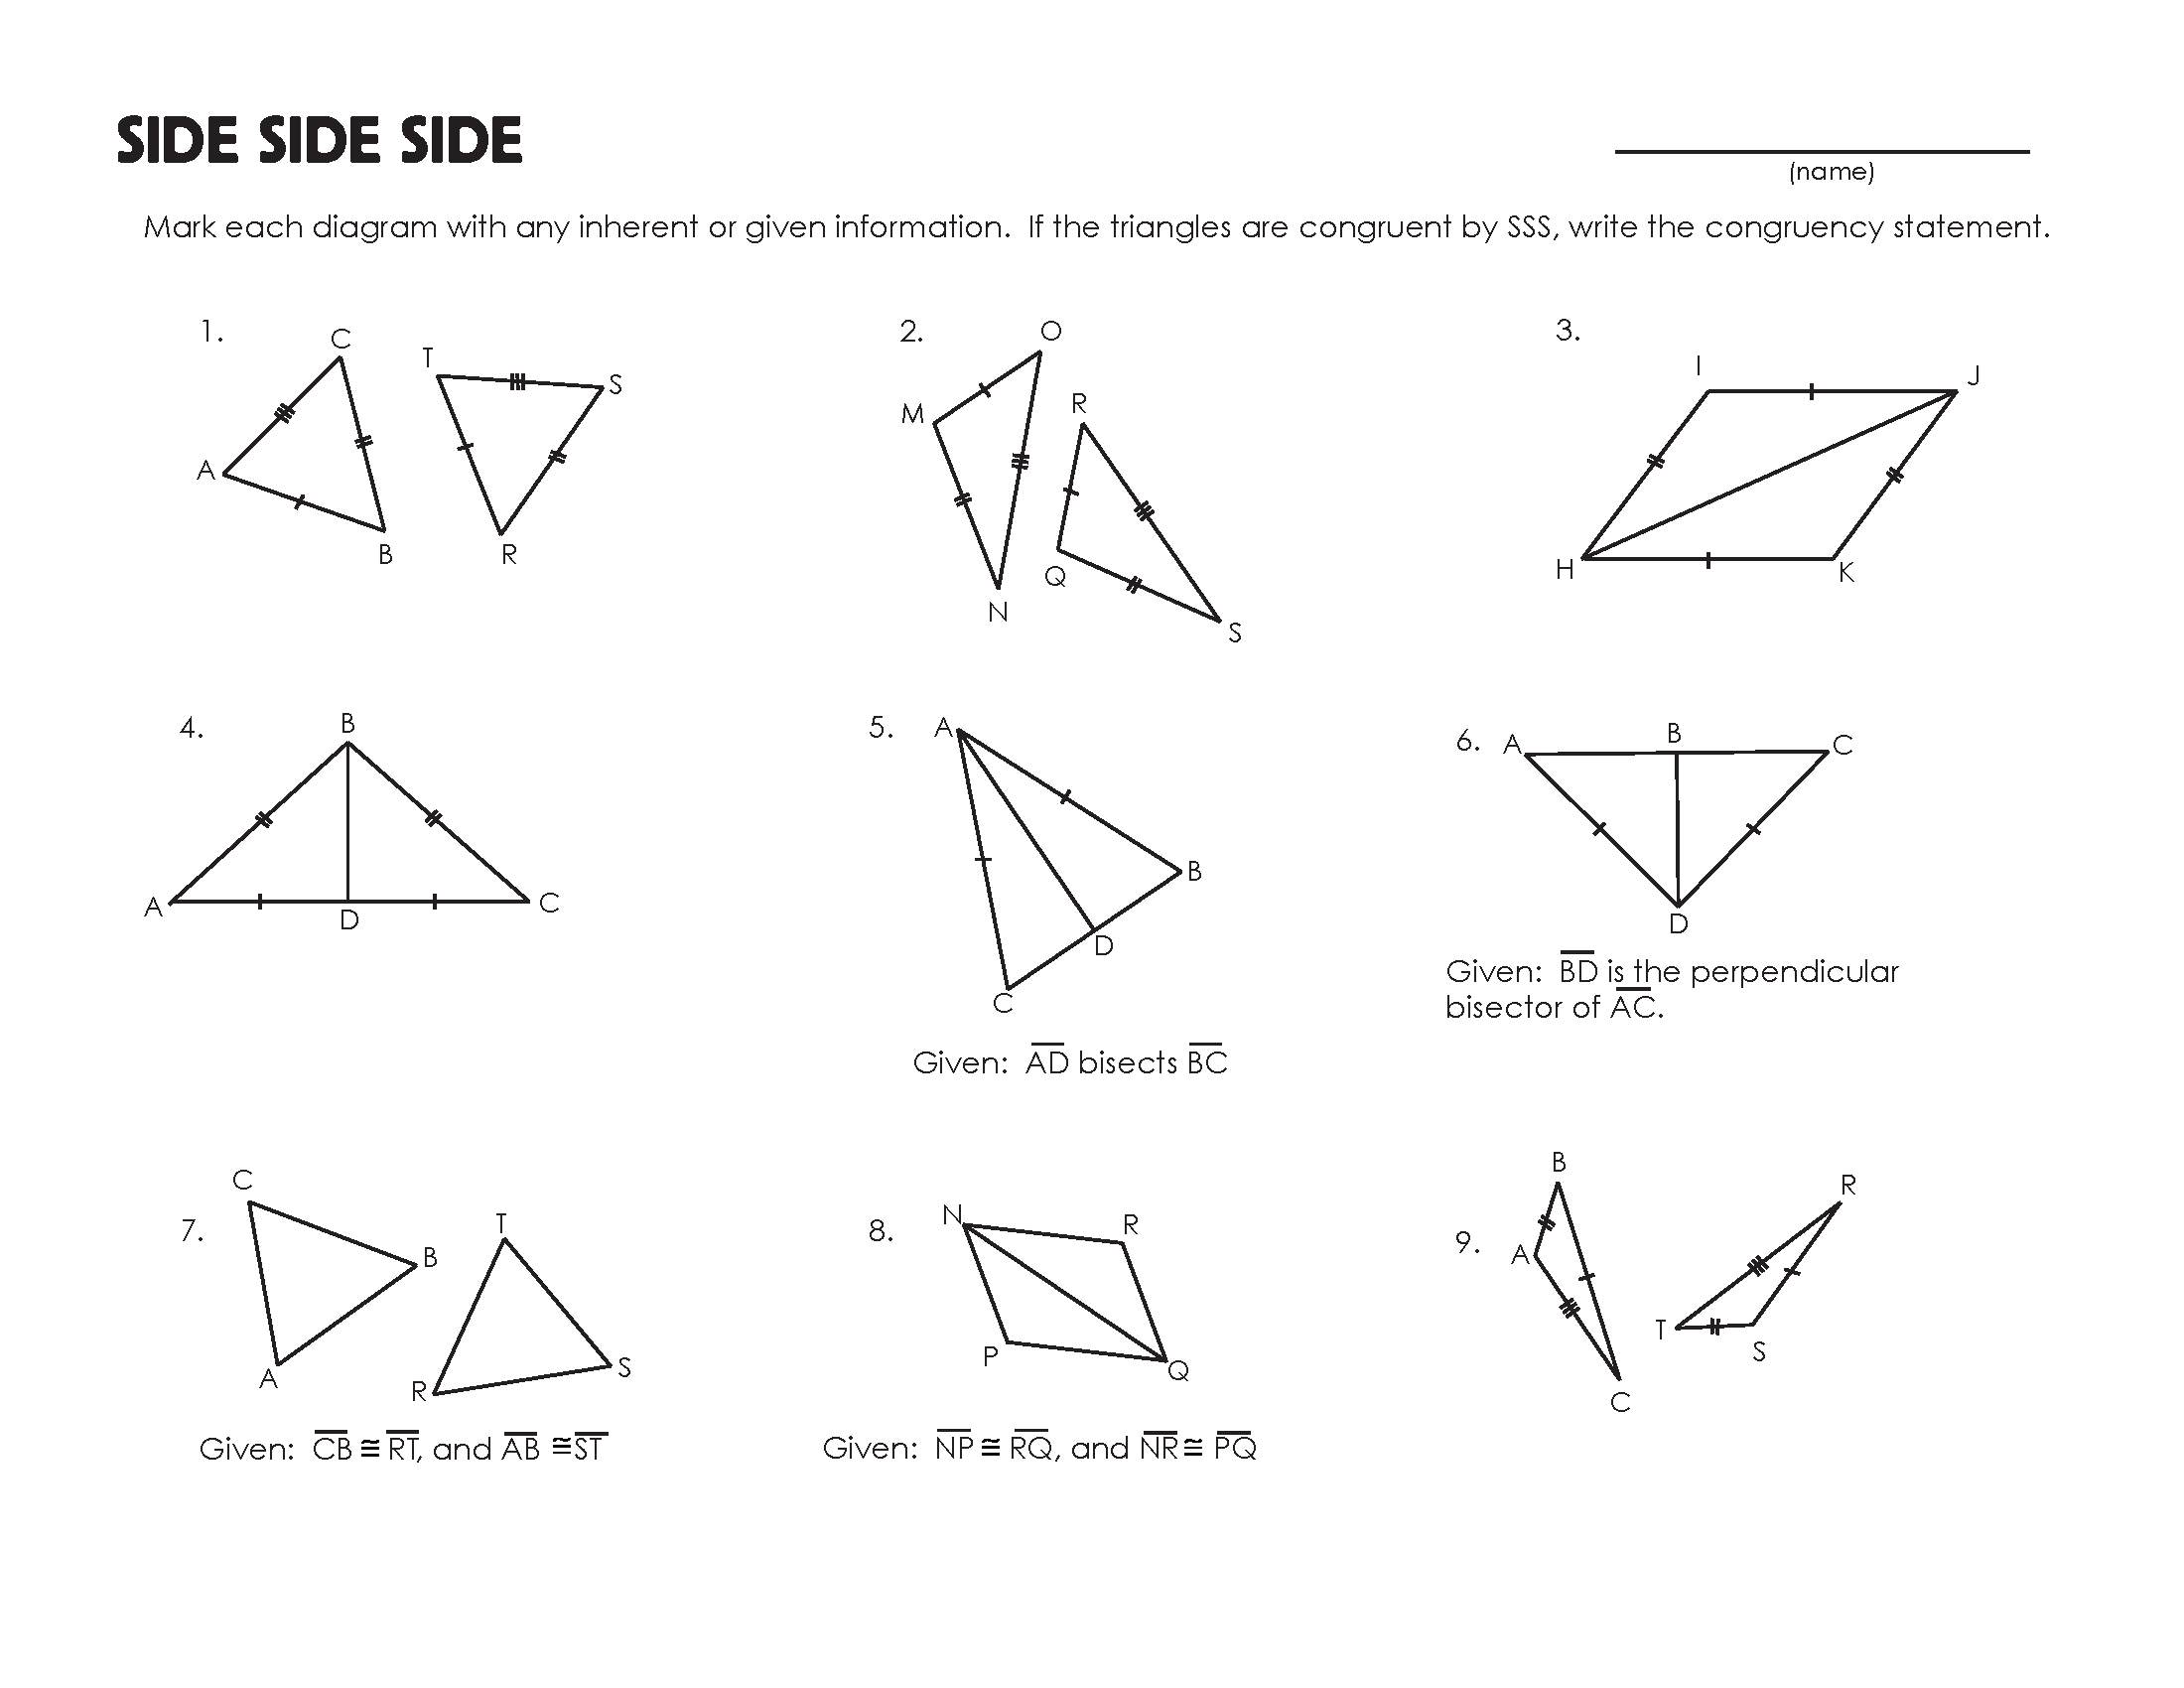 Proving Triangles Congruent Worksheet Answer Key